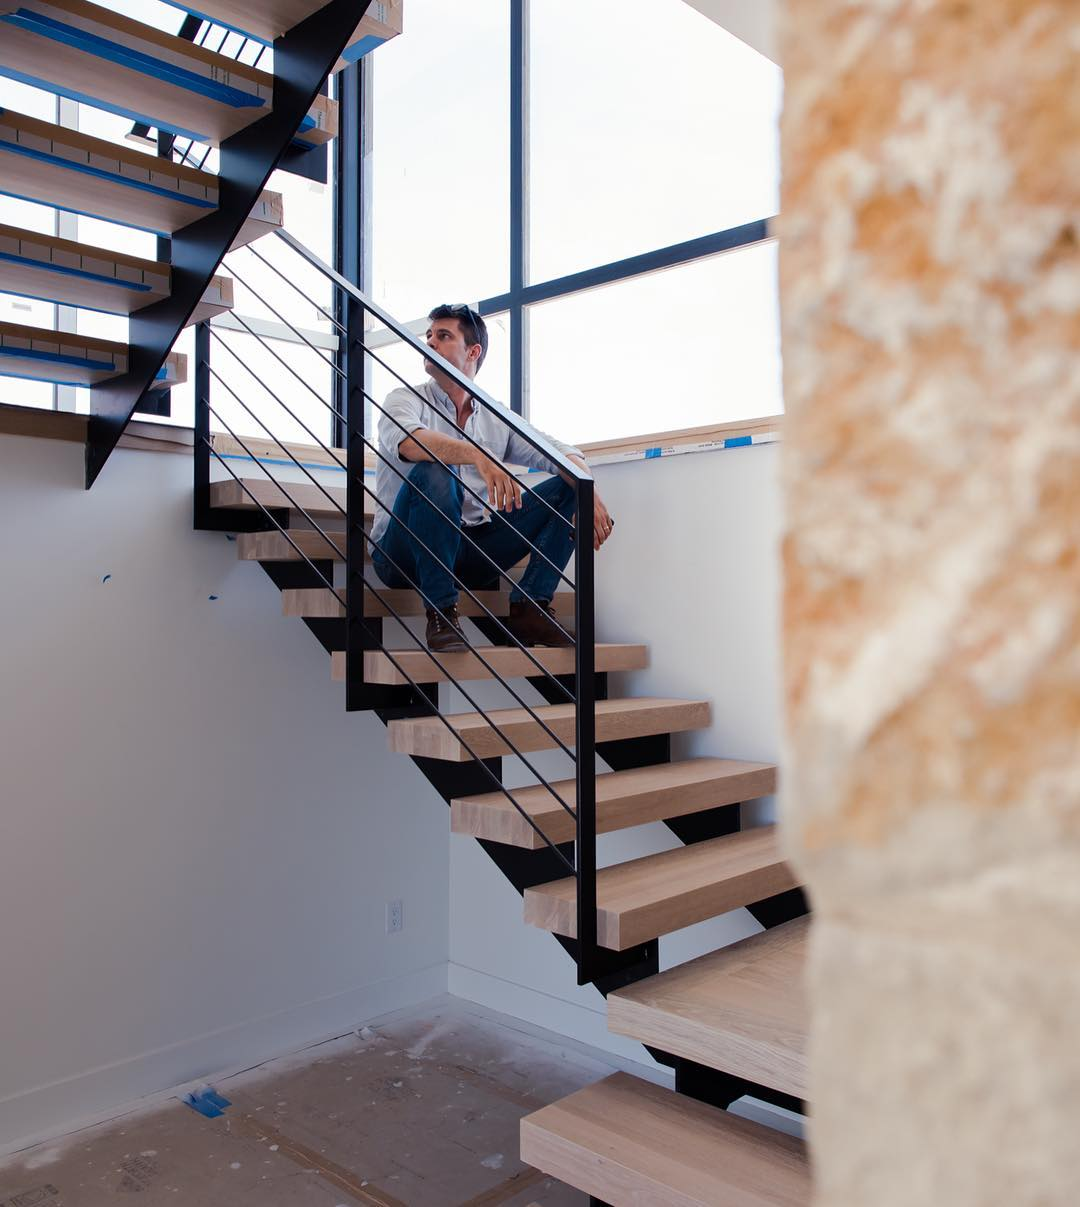 Contemplation of design with Breck Craparo on our latest stair install. Built by @foursquarebuilders & @austin_iron & @ingrainedbynature Designed by @dc_architecture Photo by @redpantsstudio